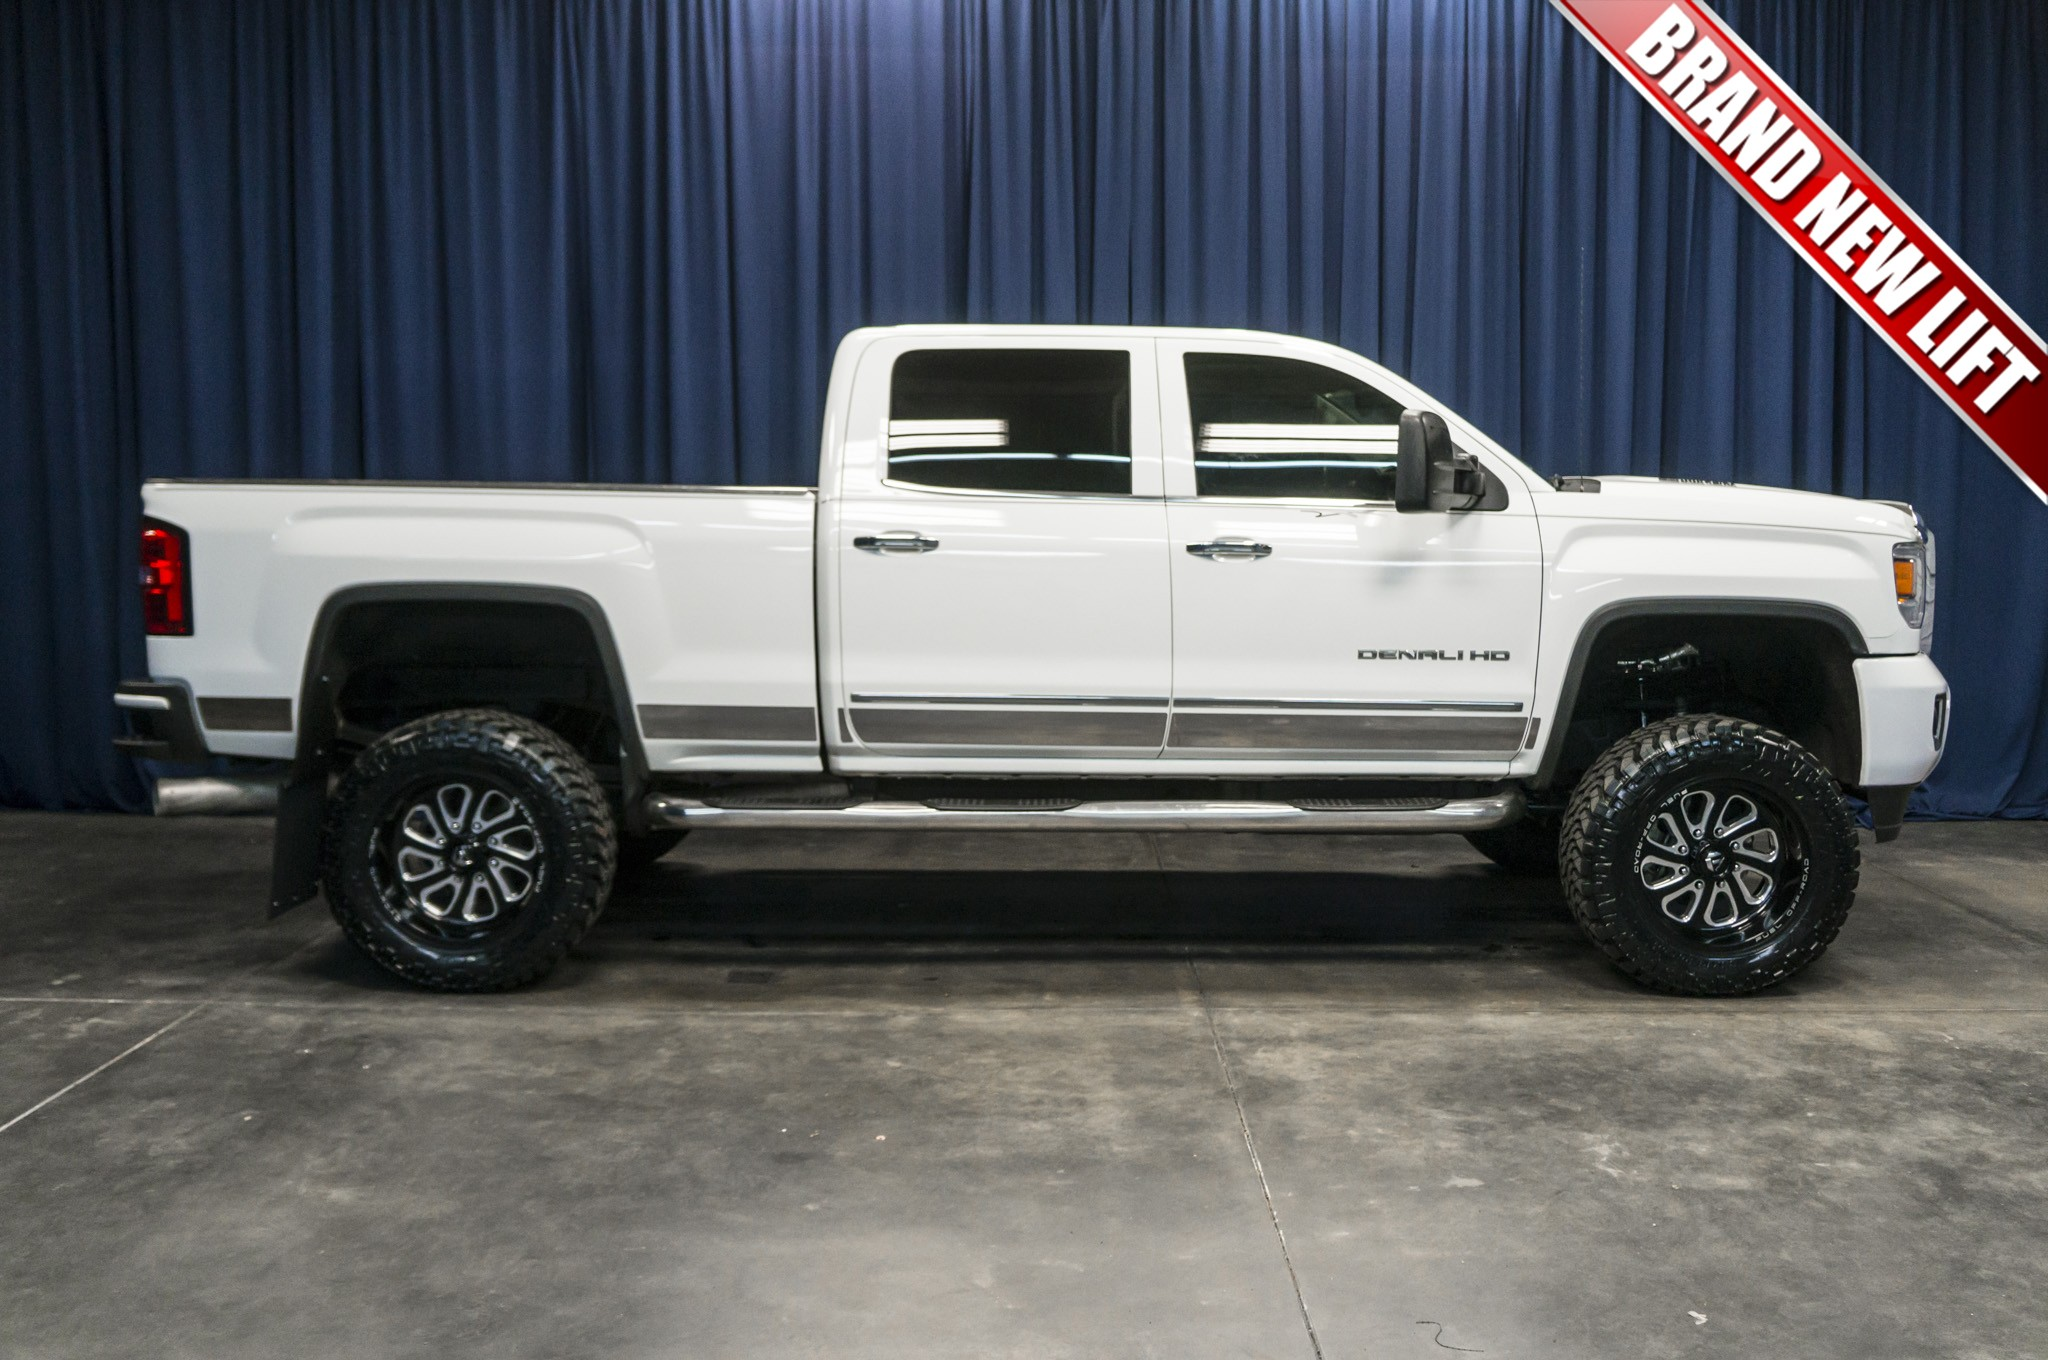 used lifted 2015 gmc sierra 2500 denali 4x4 diesel truck for sale 35608. Black Bedroom Furniture Sets. Home Design Ideas